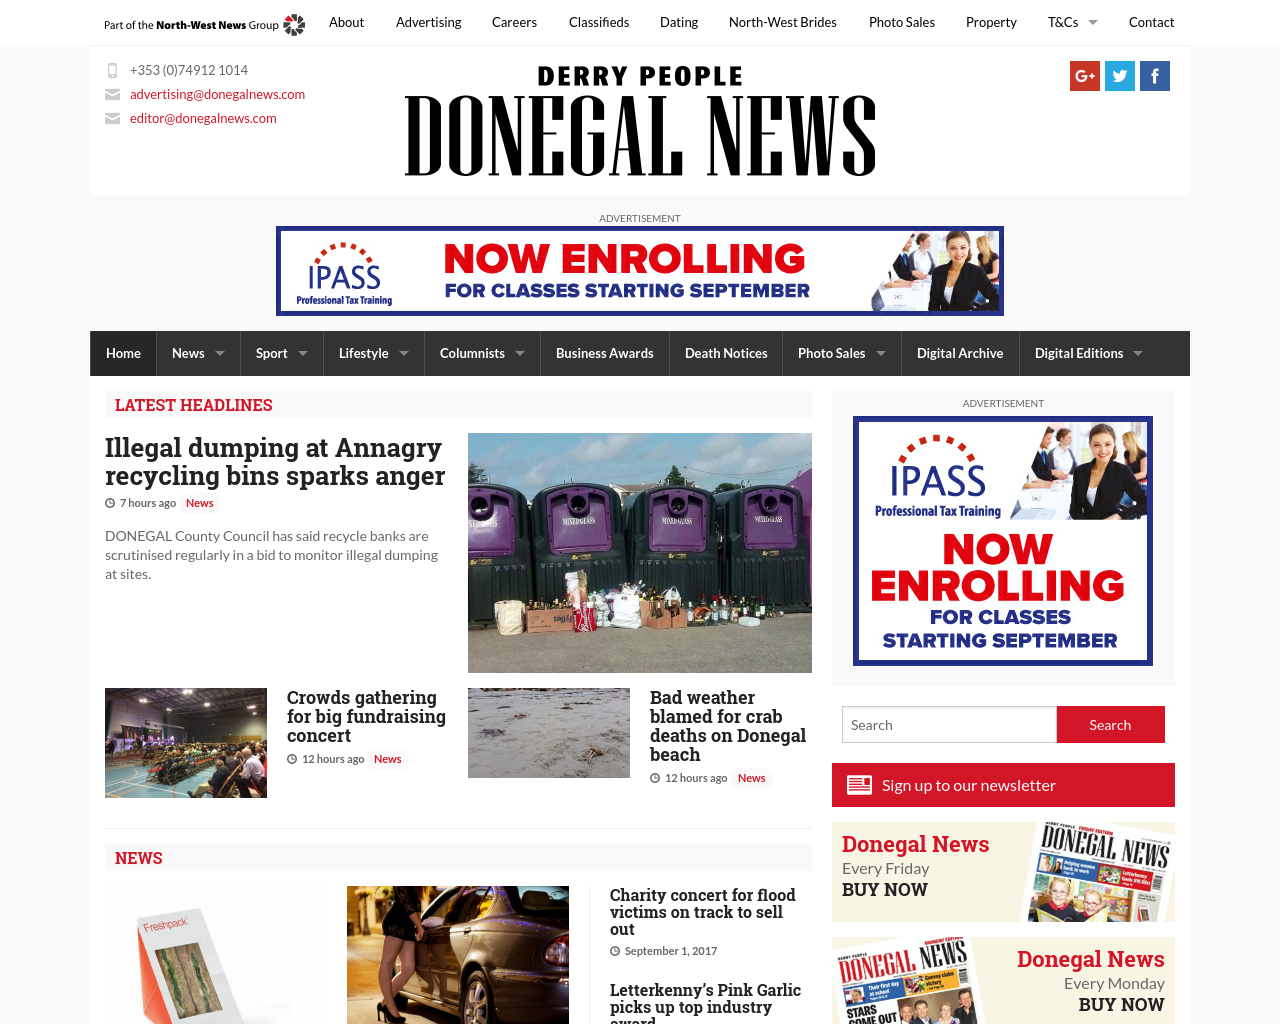 Donegal-News-Advertising-Reviews-Pricing